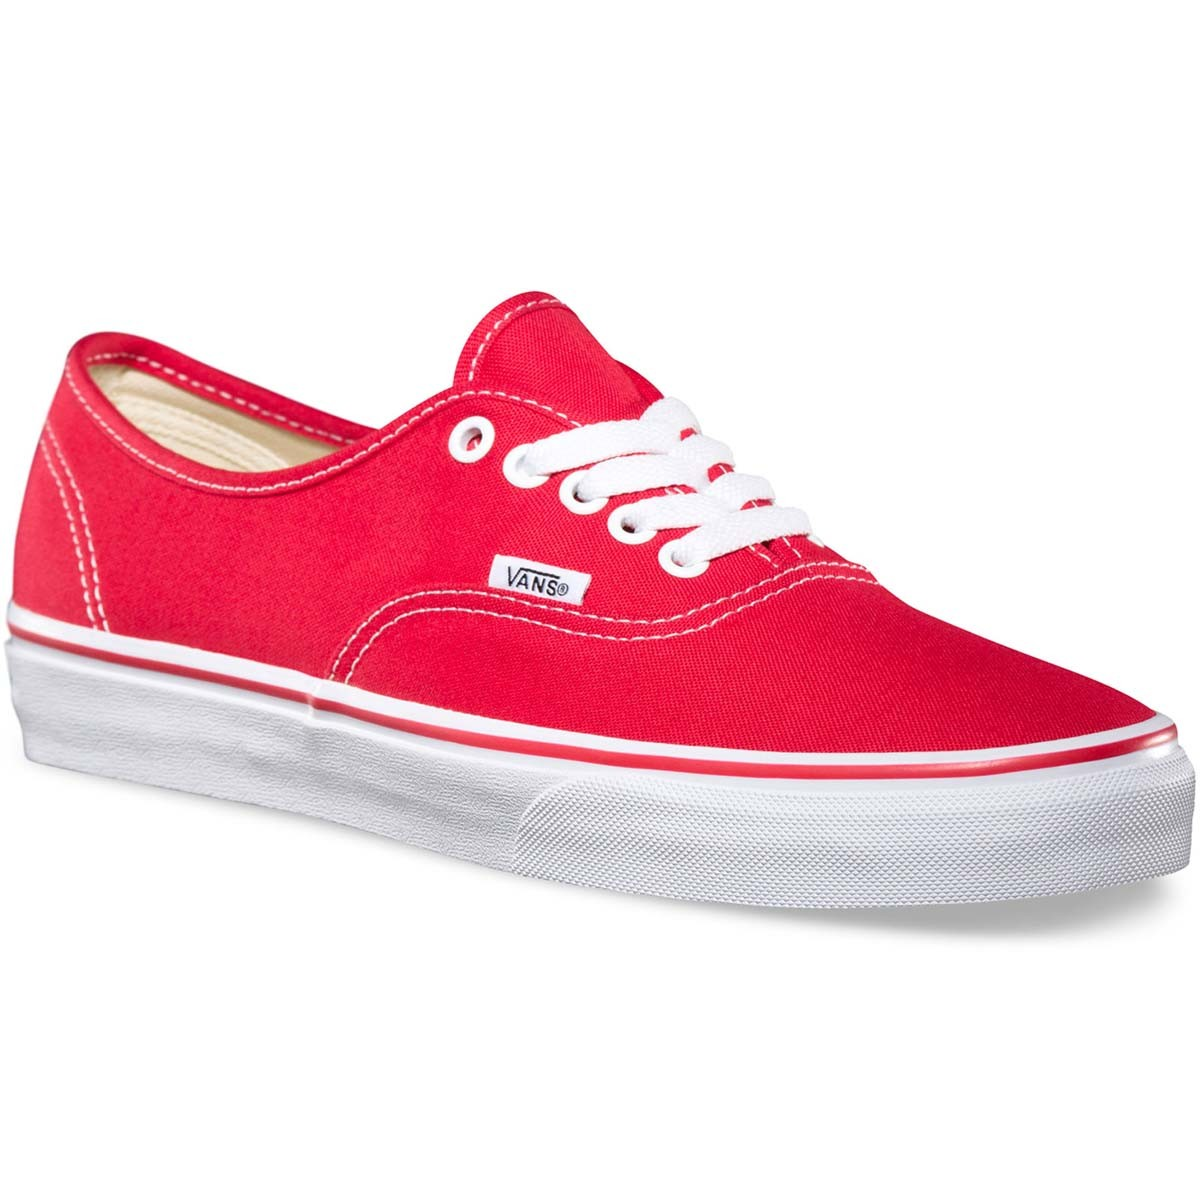 Vans Original Authentic Shoes - Red